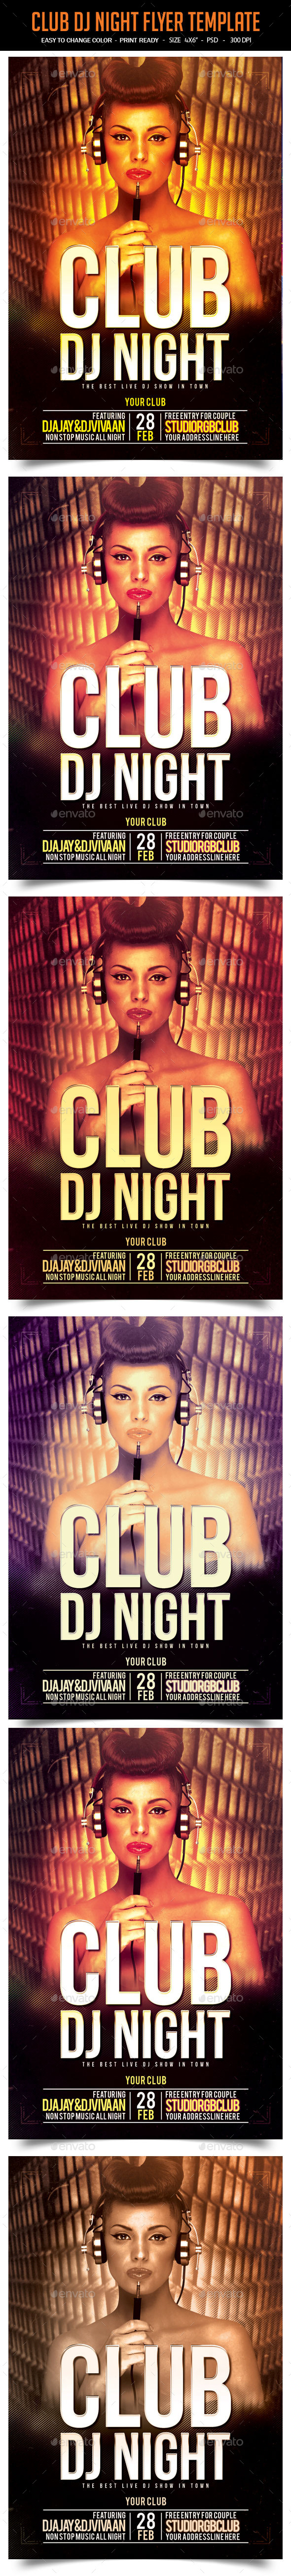 Club Dj Night Flyer Template - Clubs & Parties Events